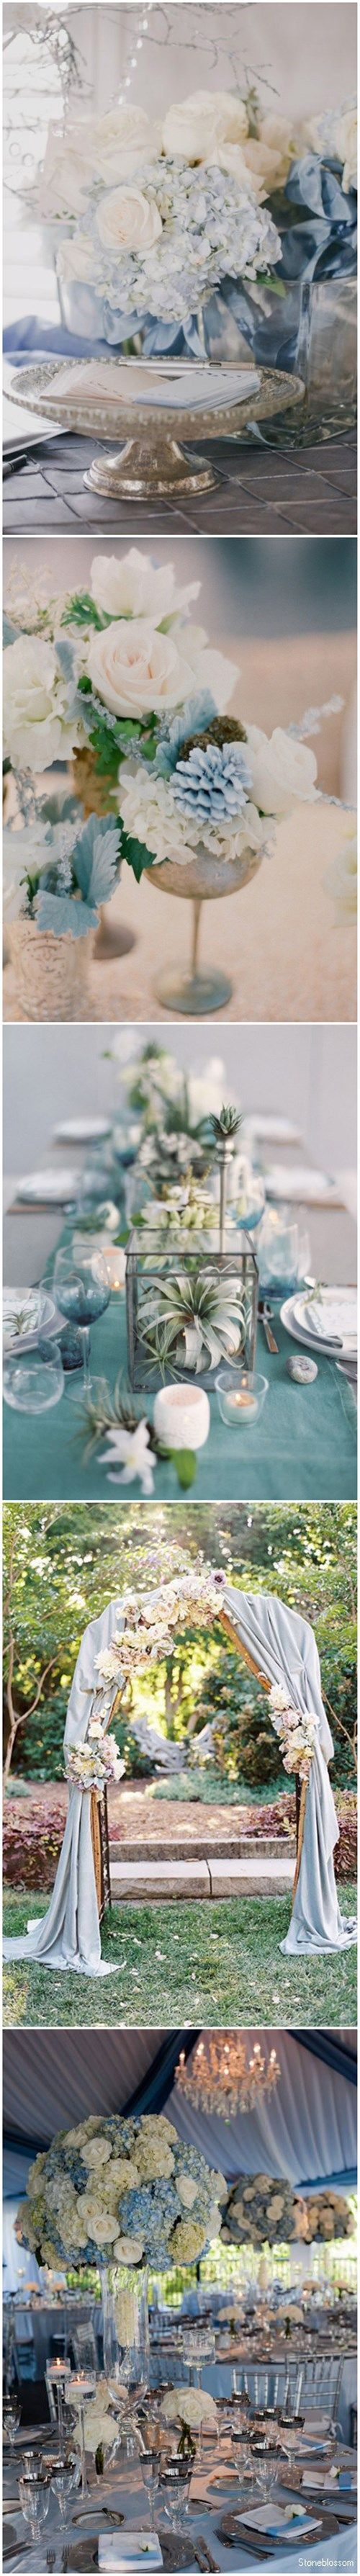 Best 25+ Dusty blue weddings ideas on Pinterest